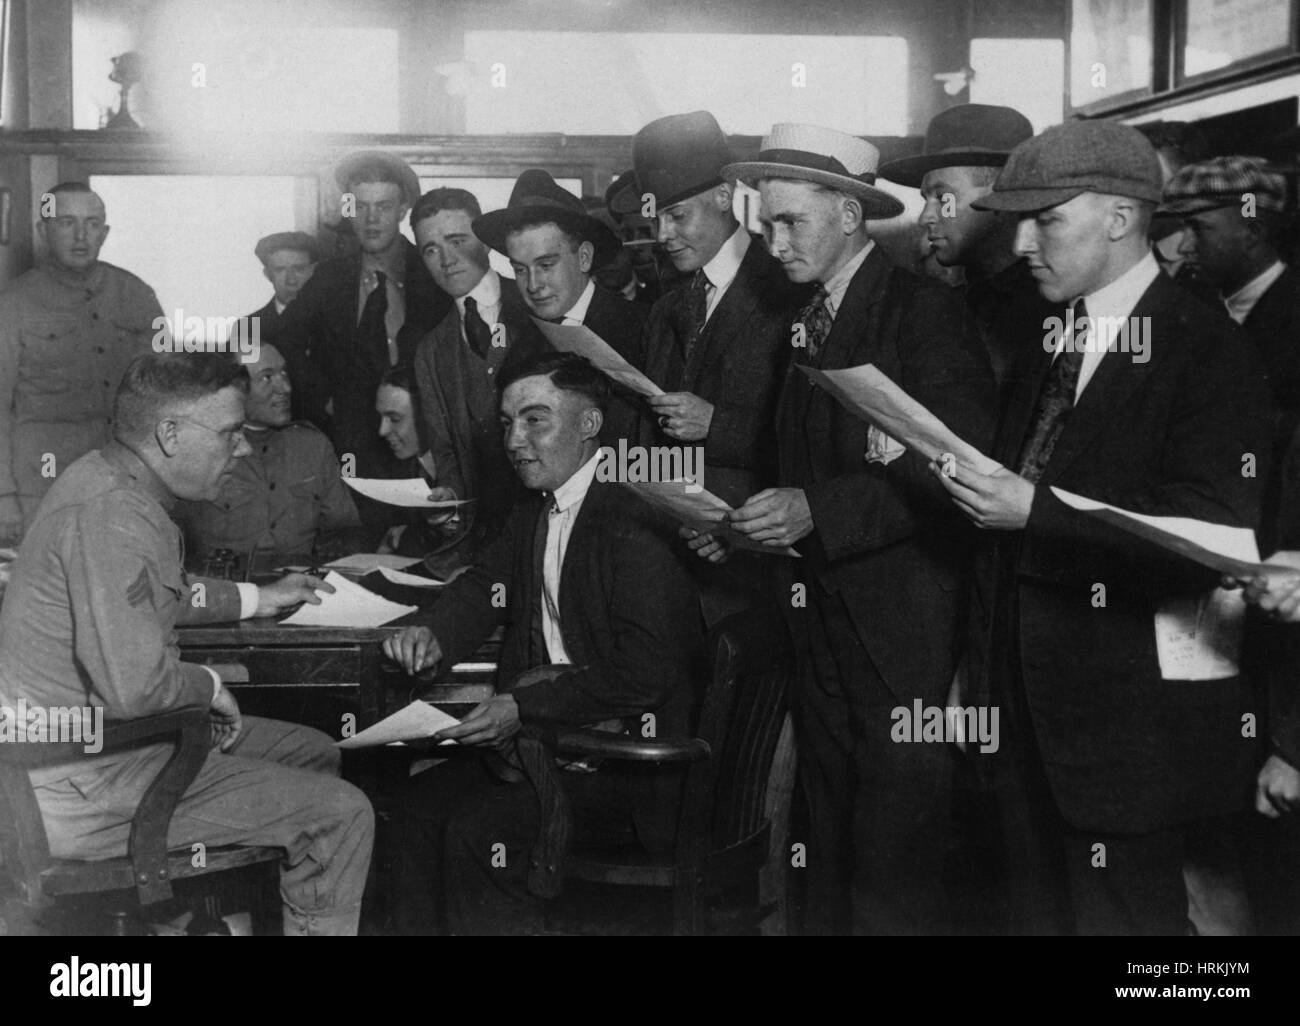 WWI, Marine Recruits, 1918 - Stock Image